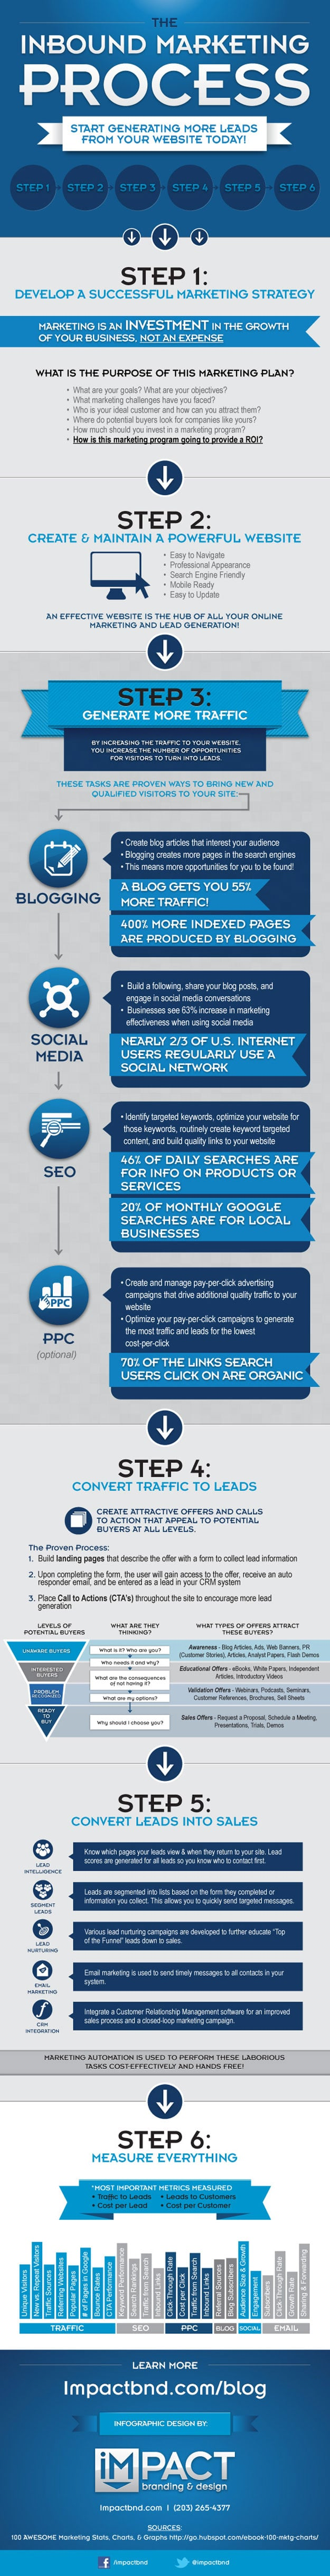 How To Get Inbound Leads From Your Website [Infographic]